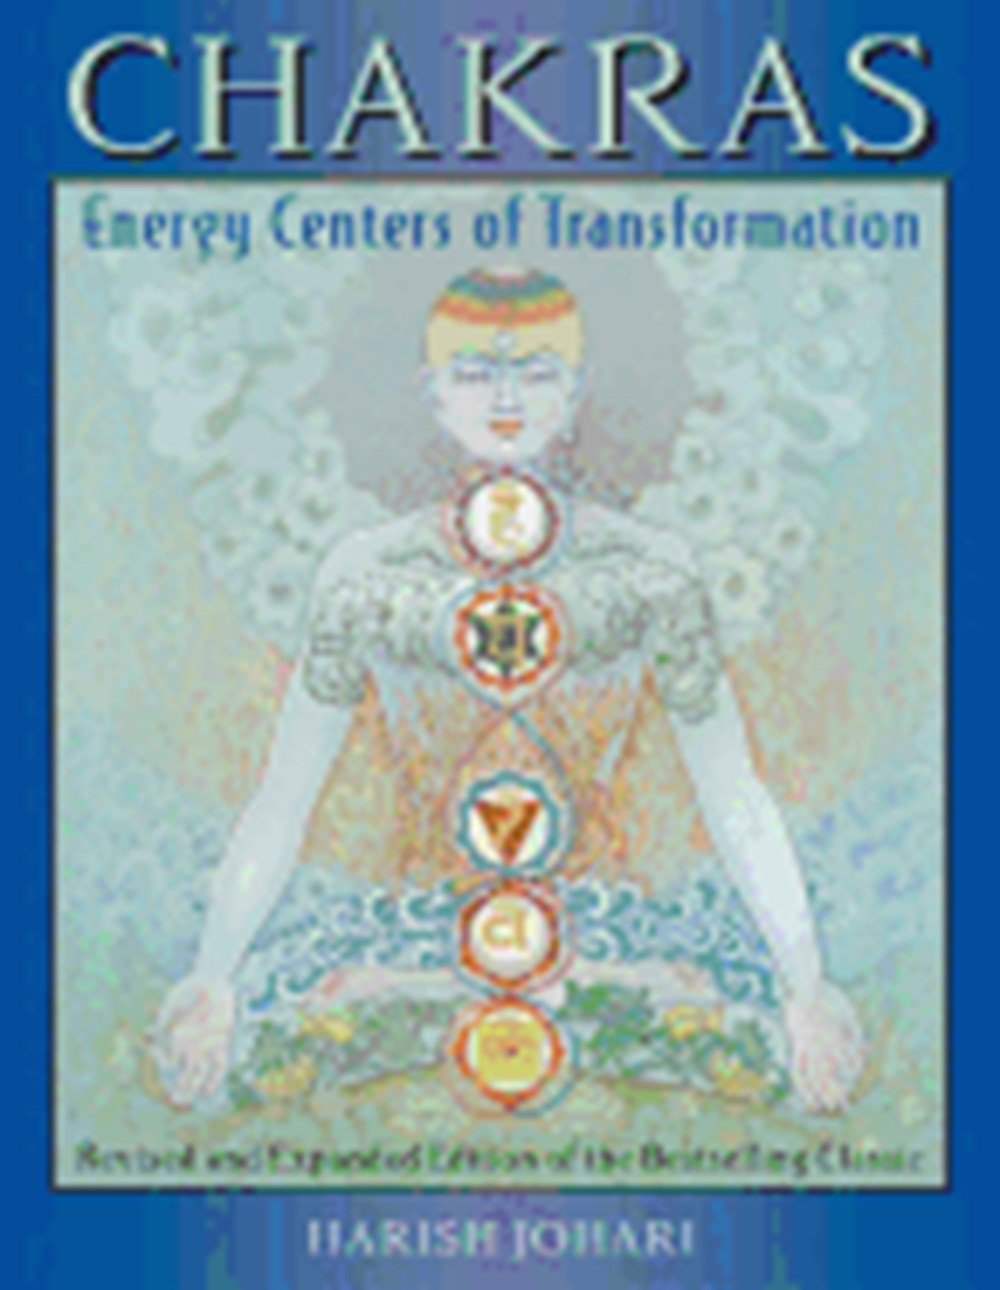 Chakras Energy Centers of Transformation (Rev and Enl)